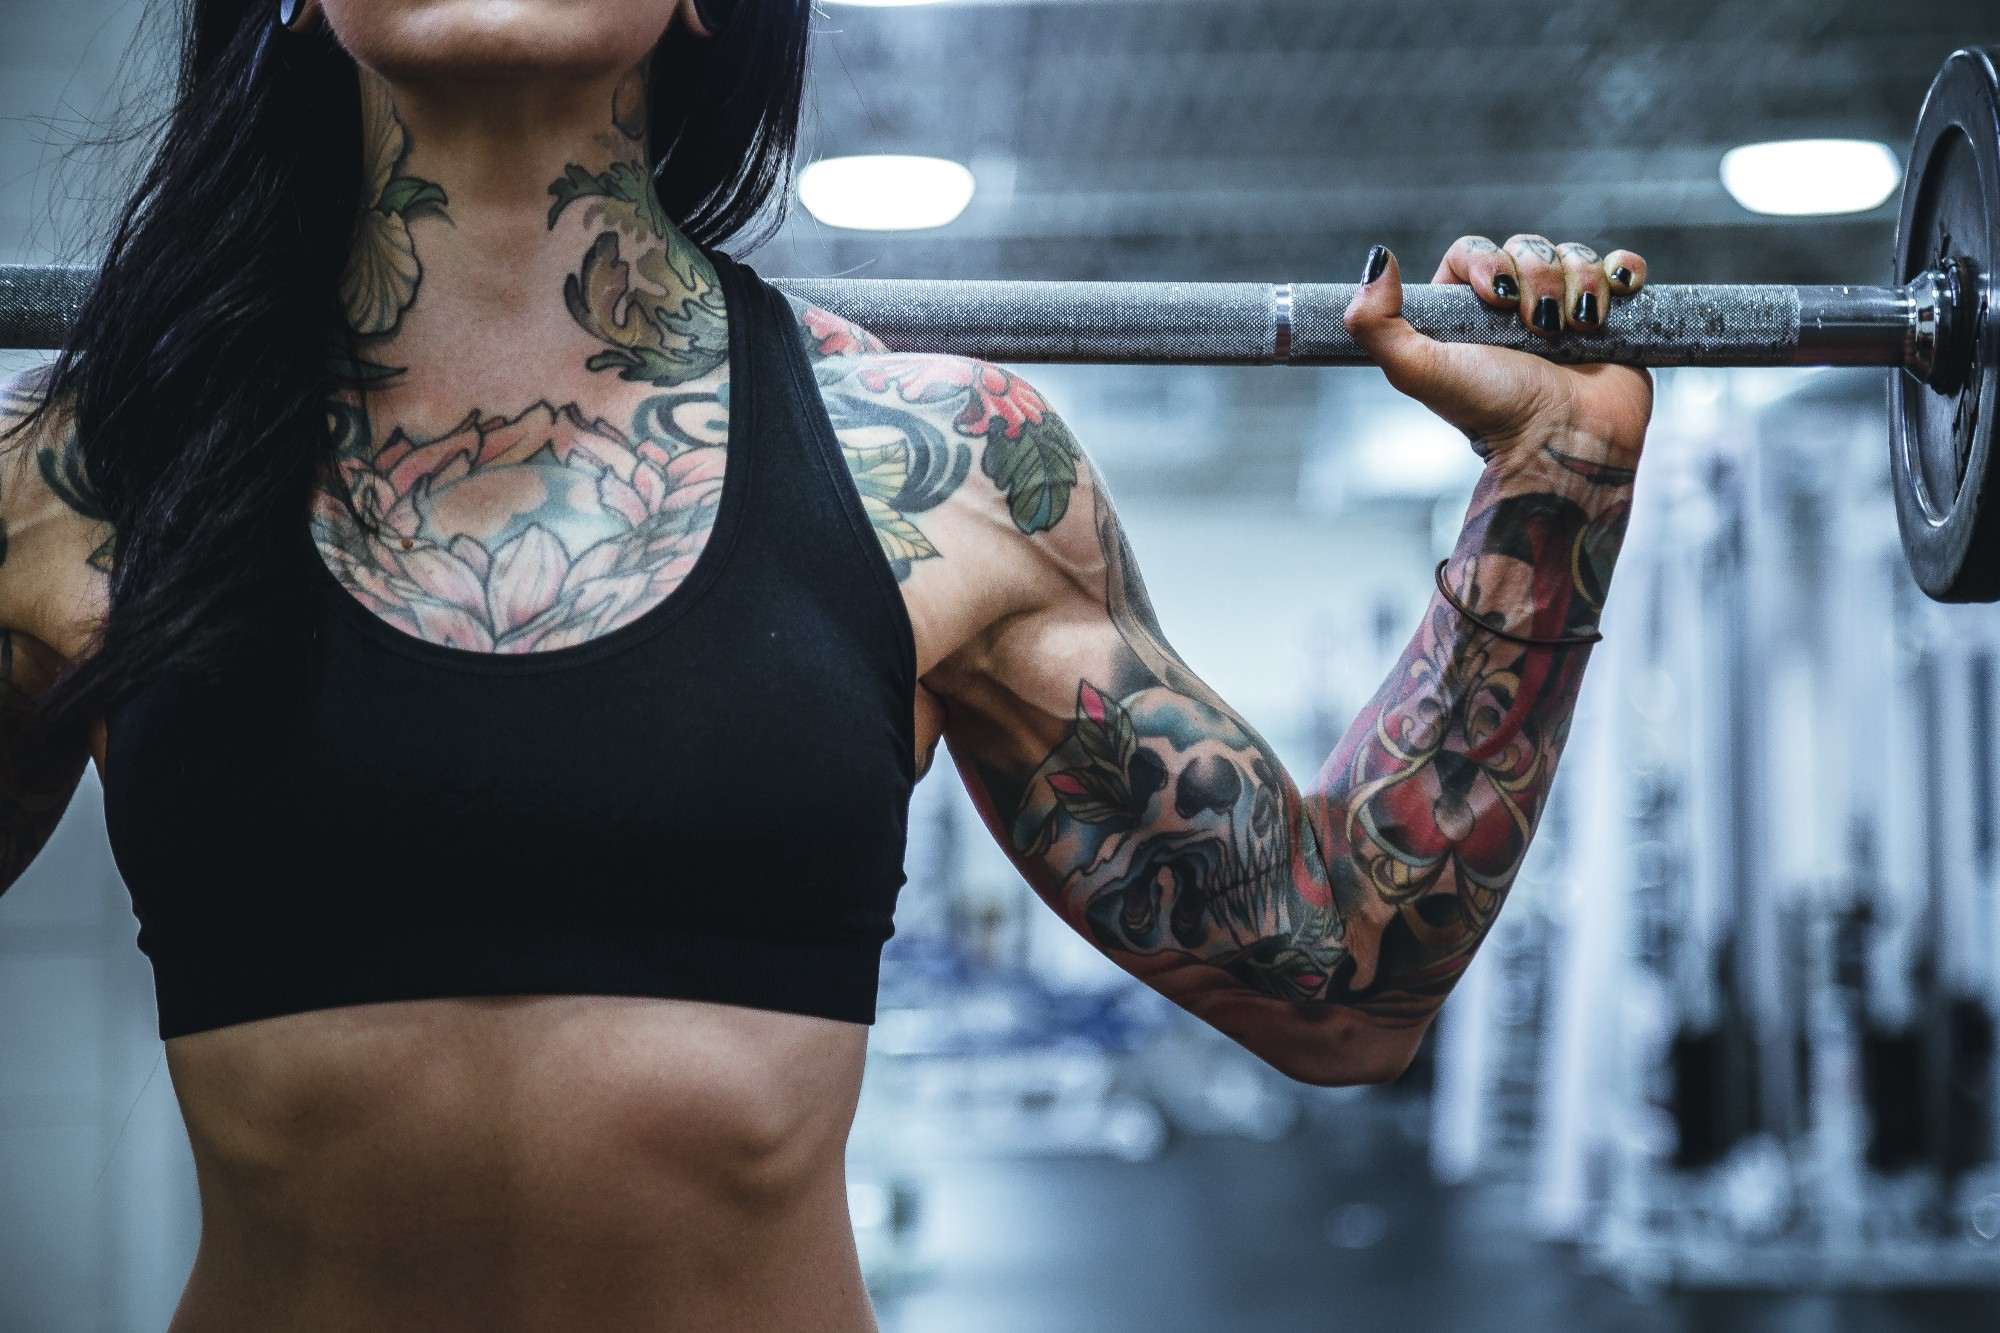 Photo of the torso and arm of a heavily tattooed woman lifting a weight